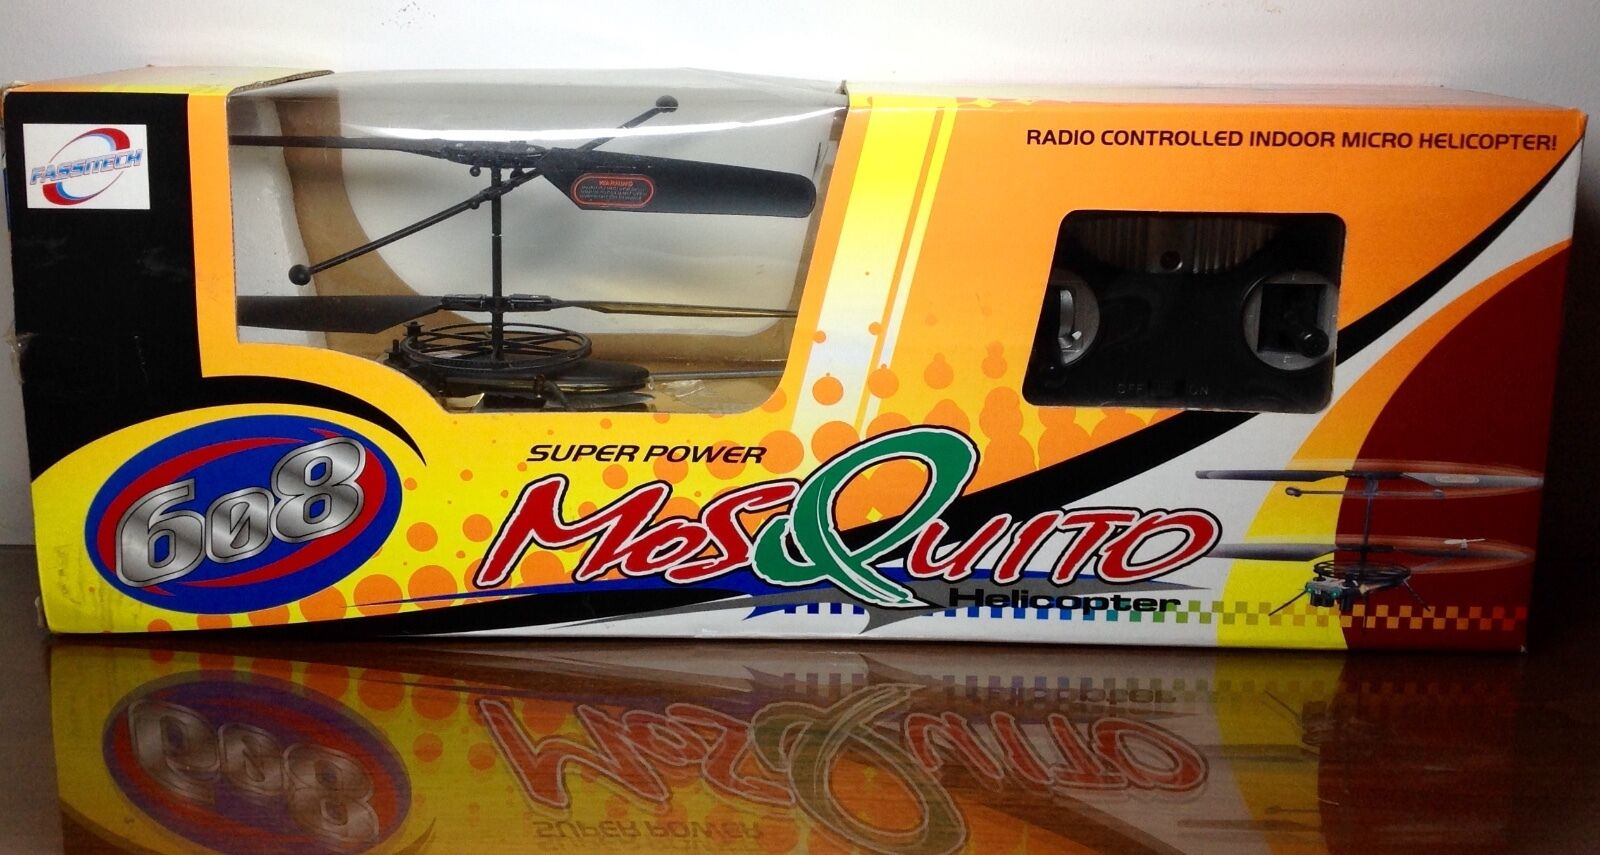 FASSITECH 608 608 608   SUPER energia MOSQUITO HELICOPTER 5223a9